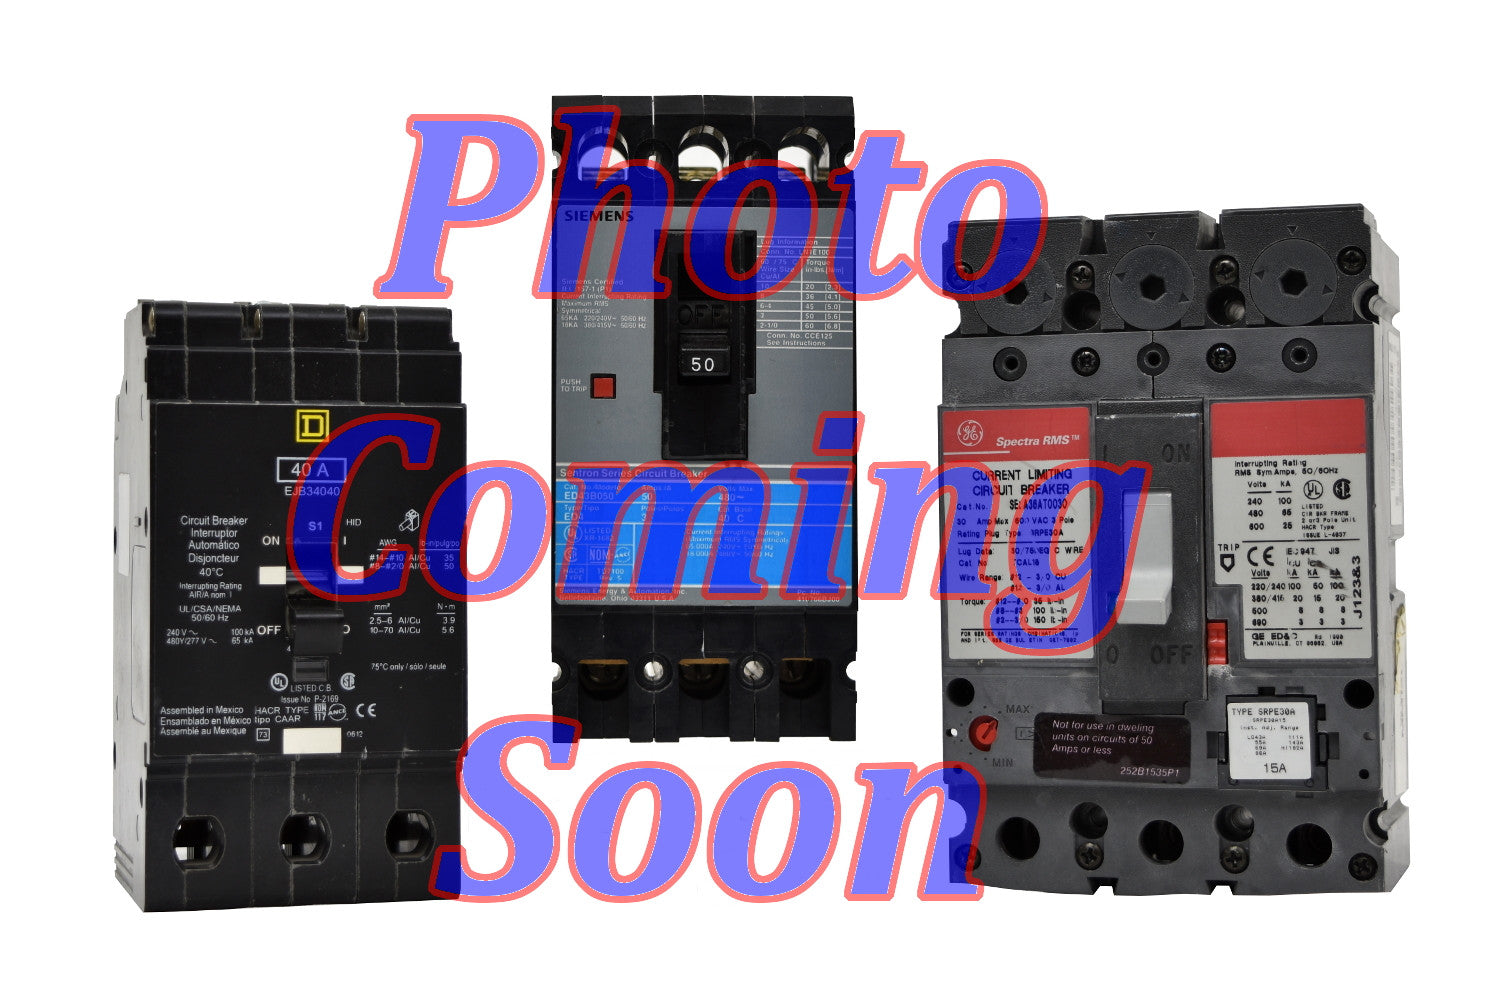 General Electric FCV326TE080R1 Circuit Breakers